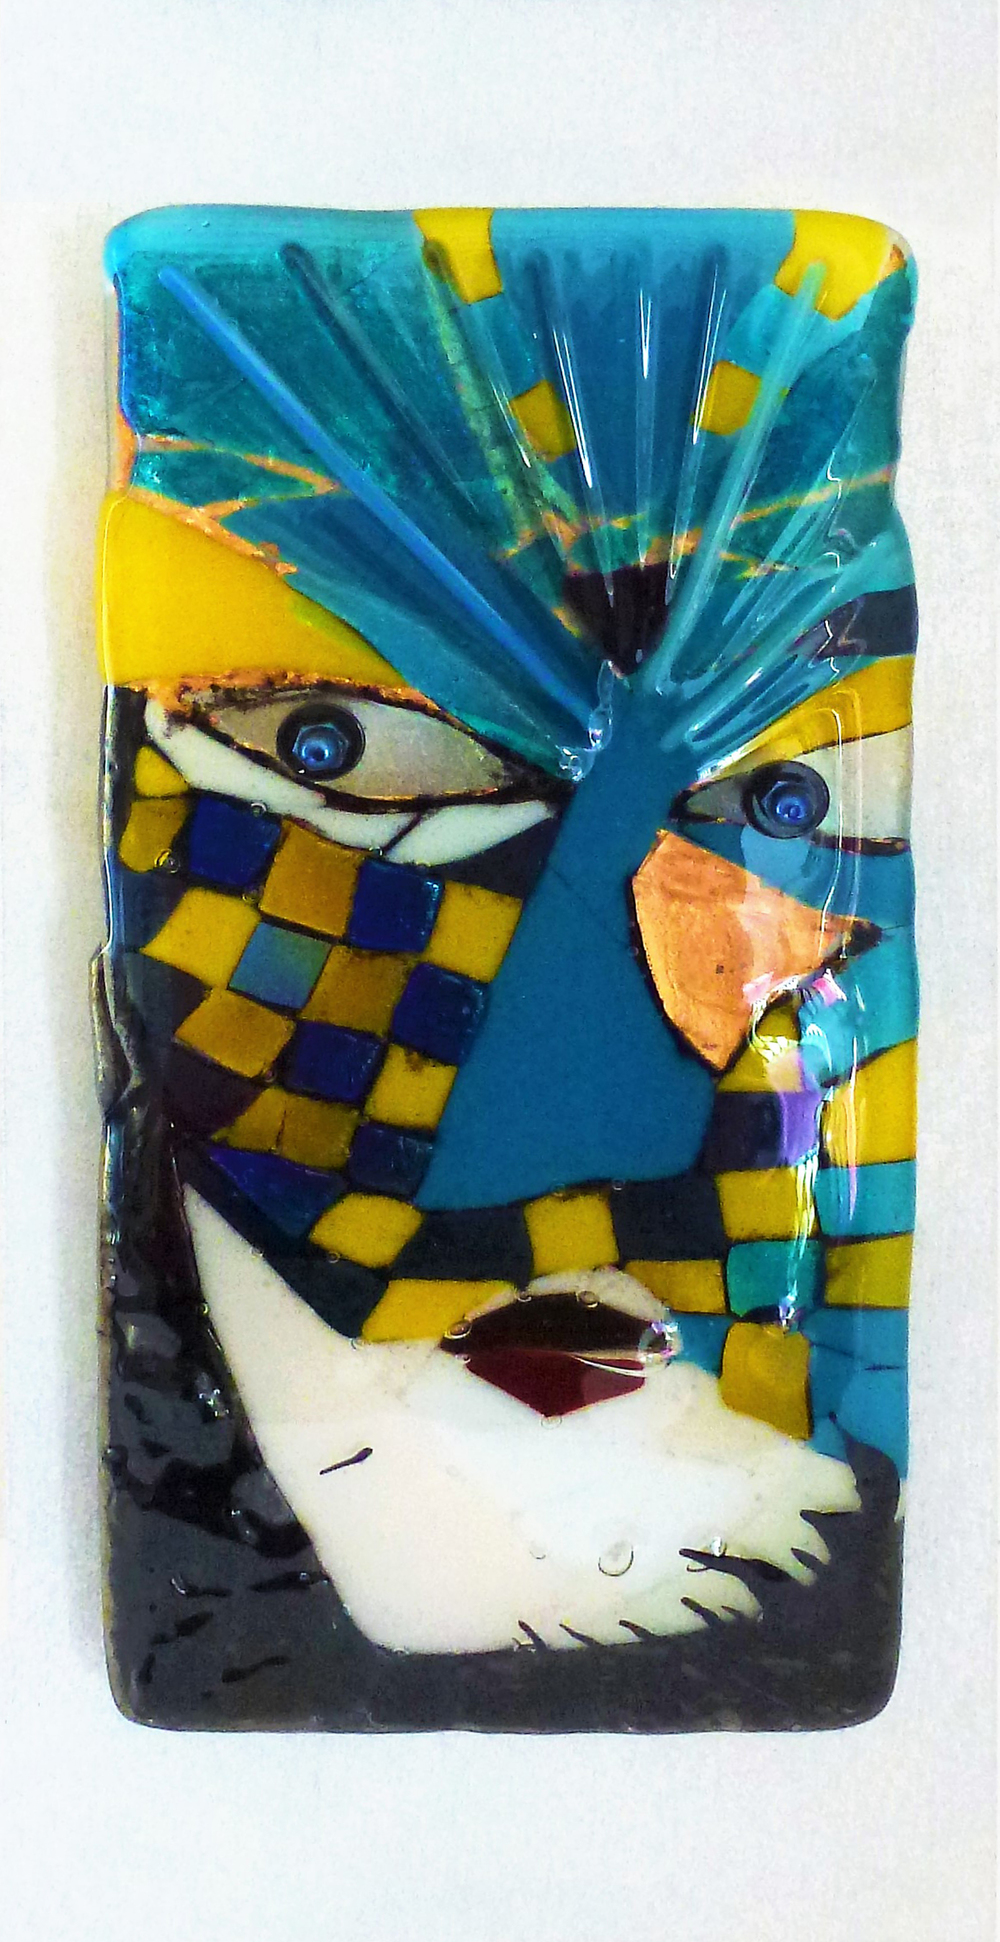 Diavolo Blu - Venice series fused glass by Jeanette Cook